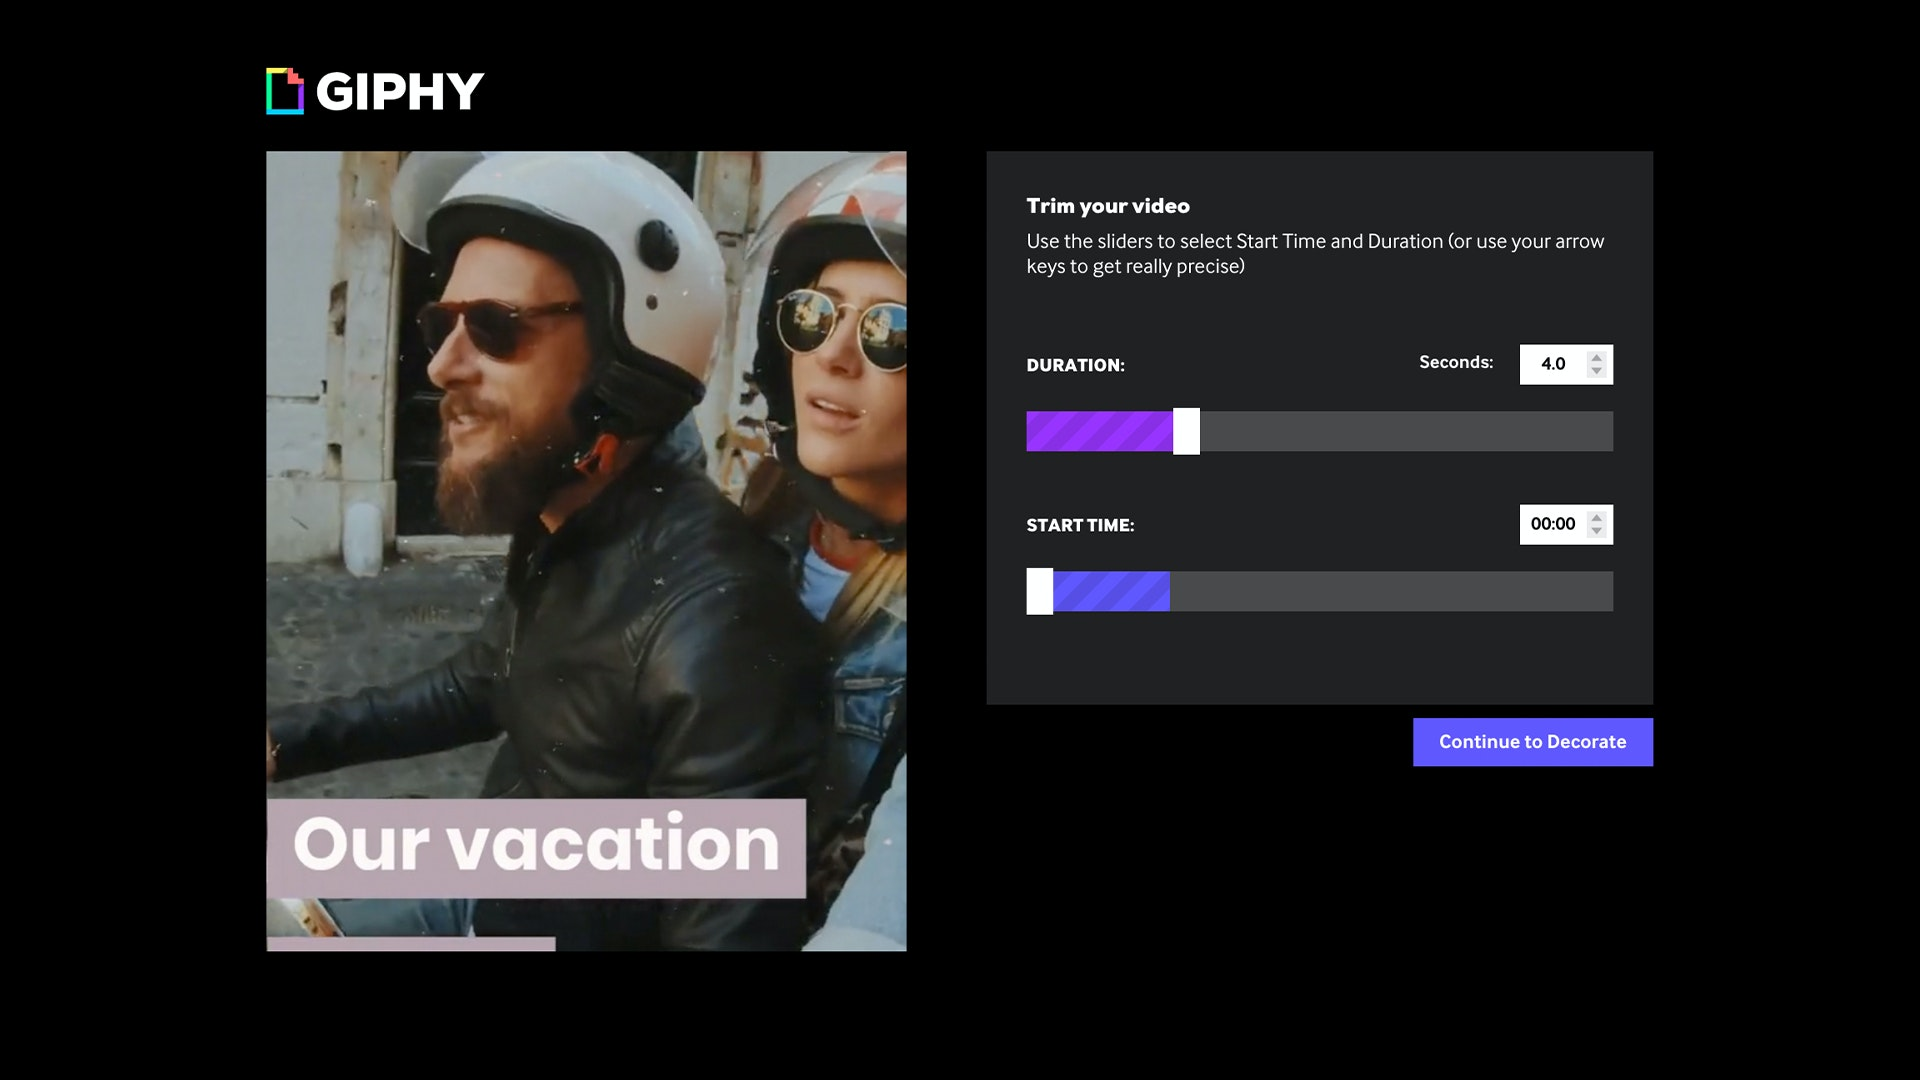 GIPHY create trim your video UI